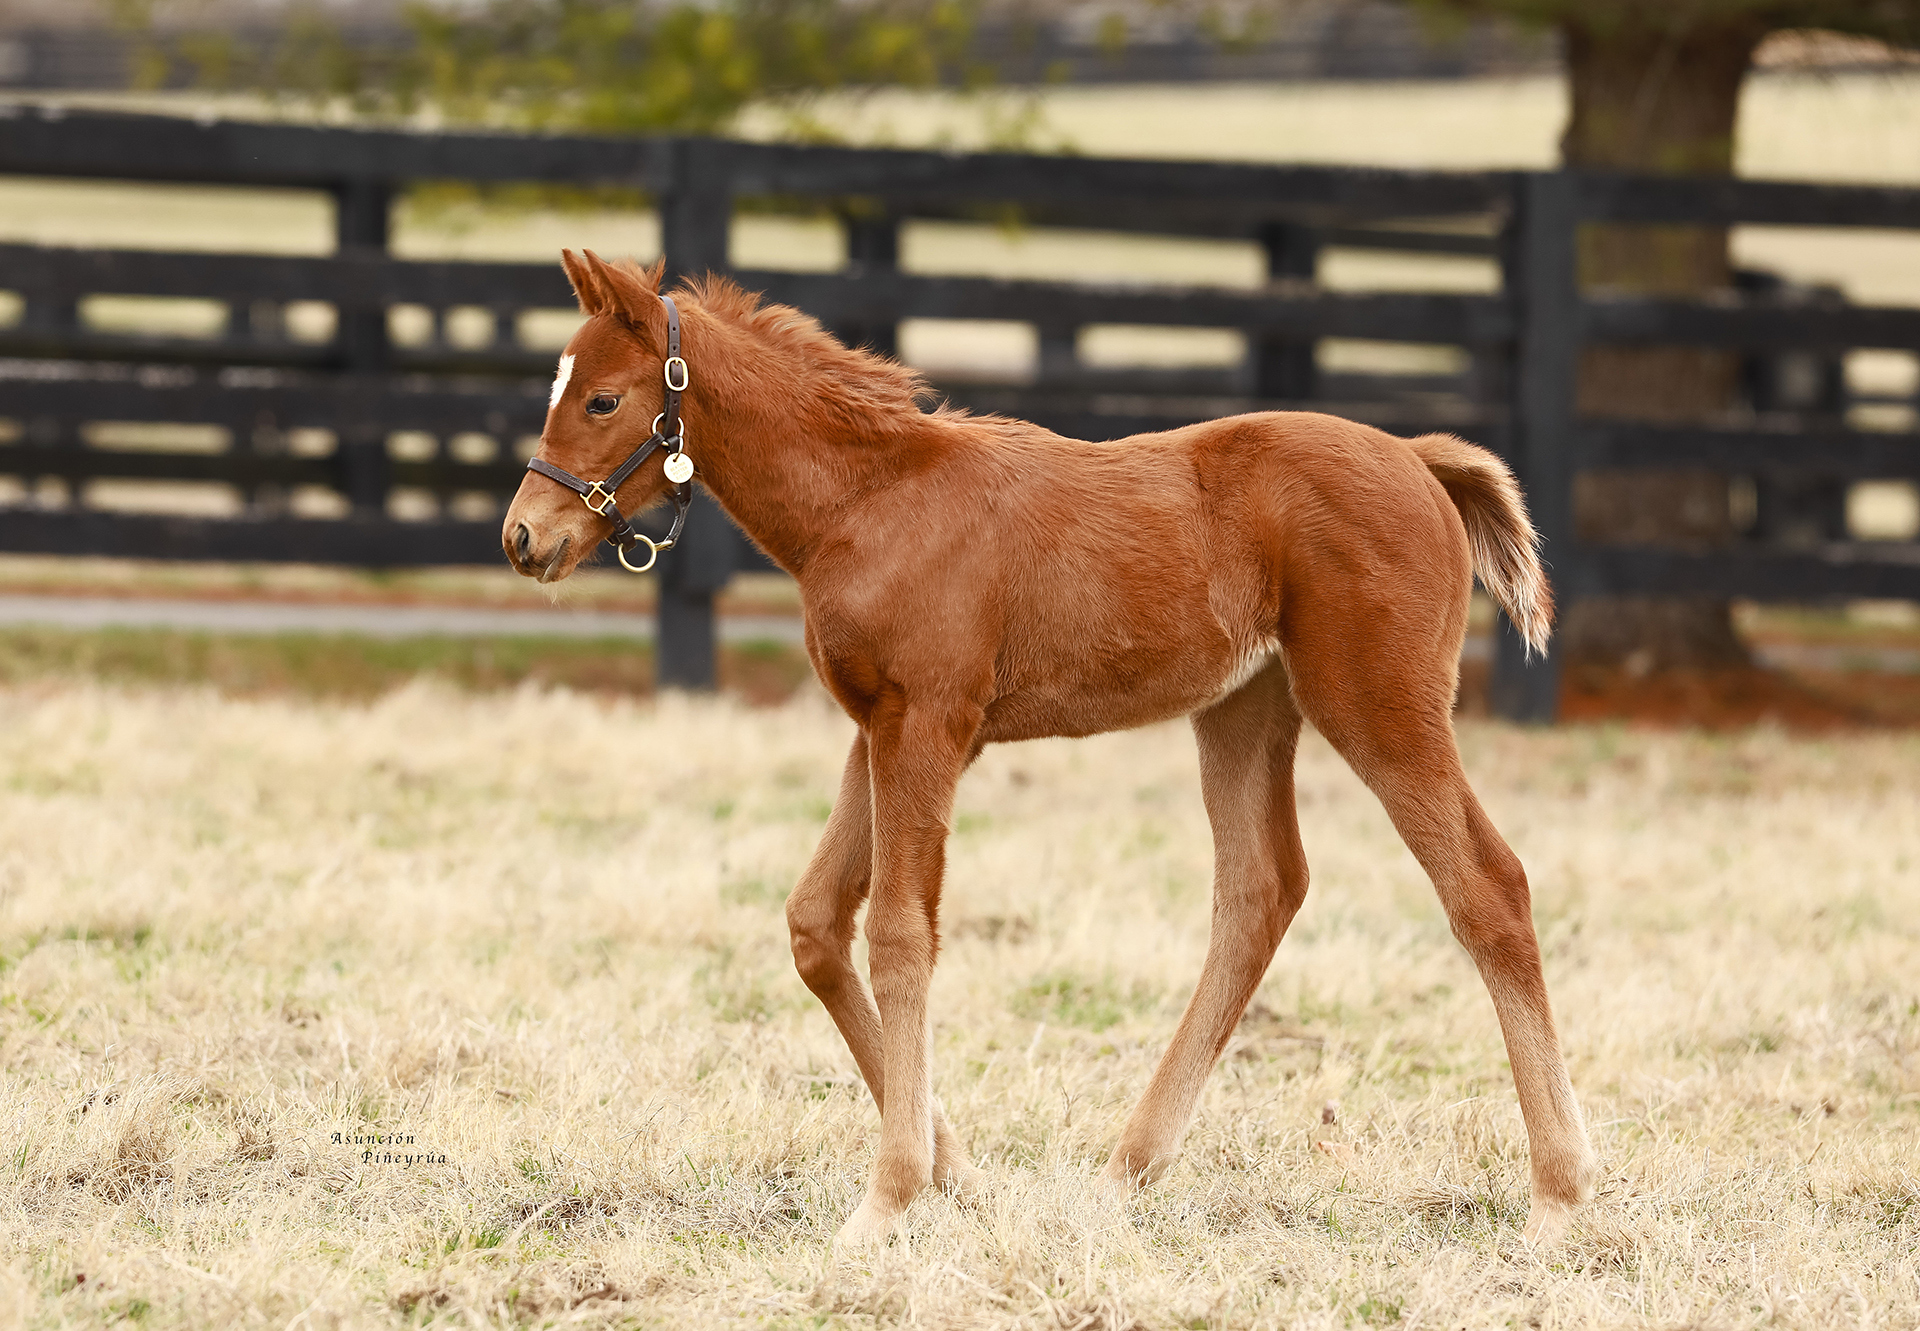 Justify-x-Beatrix-Potter-filly.jpg#asset:21978